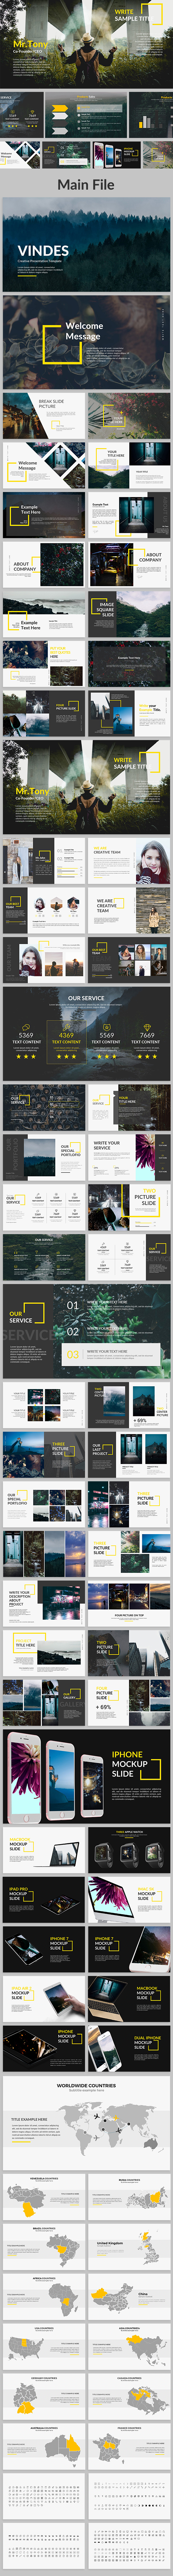 Vindes - Creative Powerpoint Template - Creative PowerPoint Templates